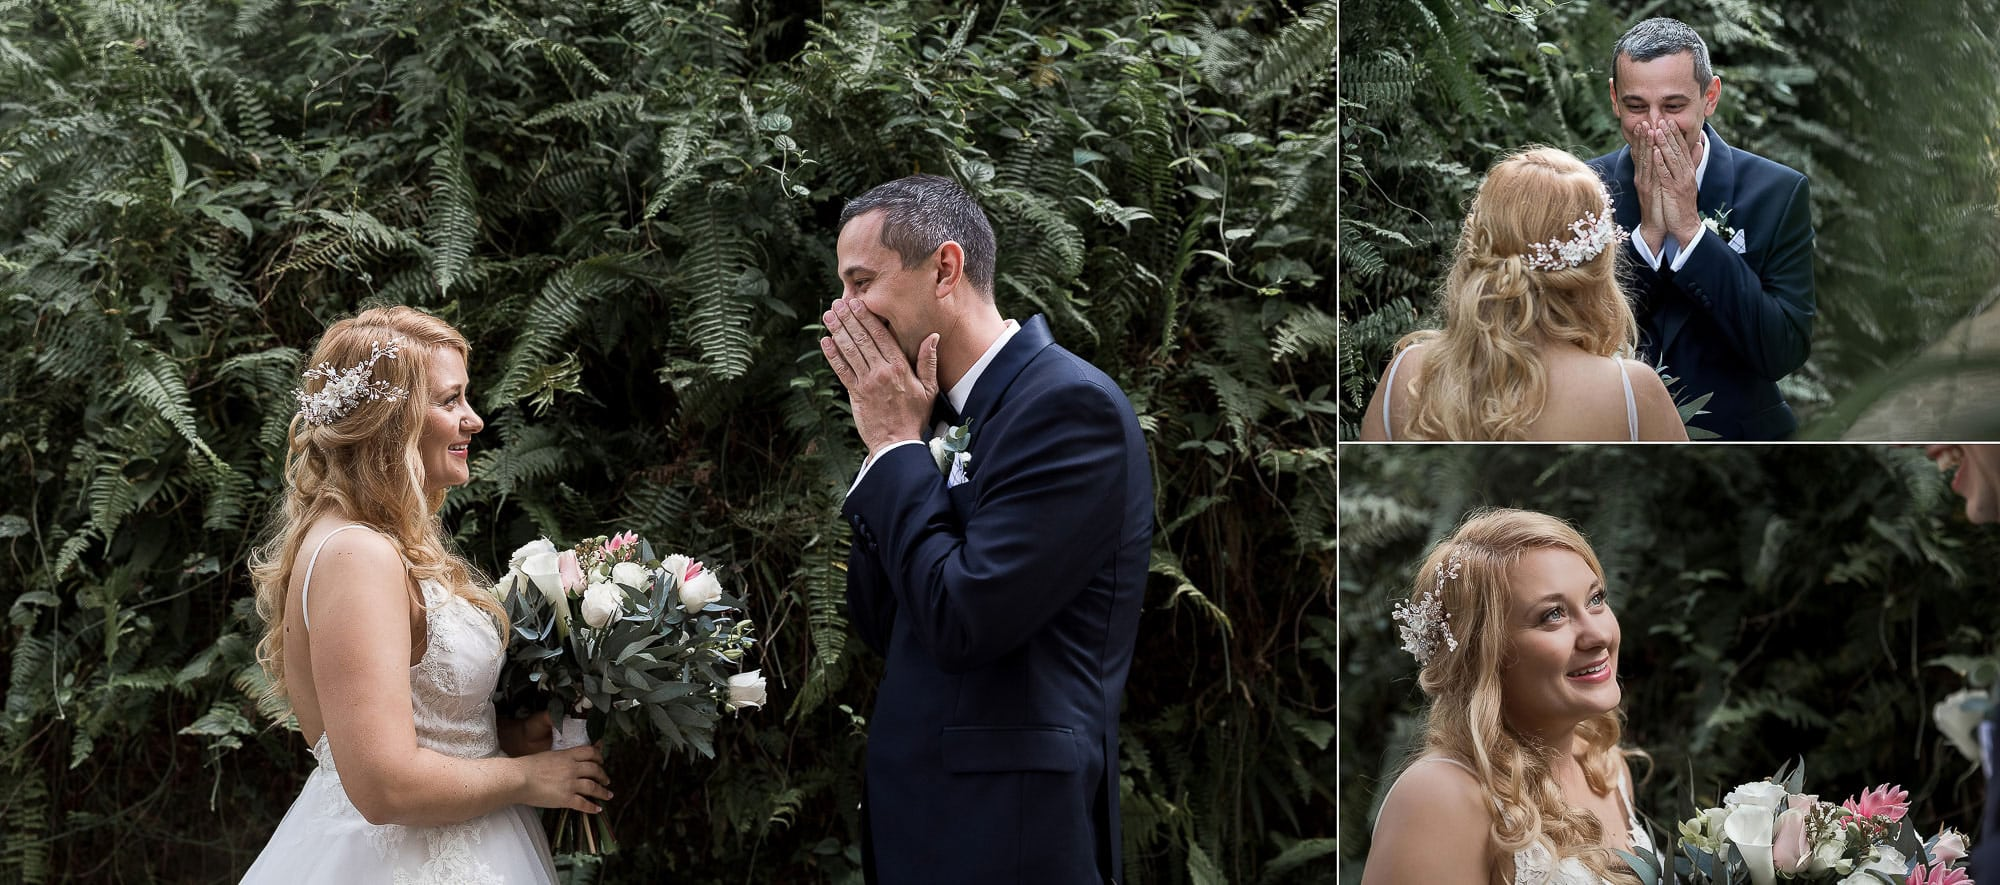 The groom's face when he sees his beautiful bride